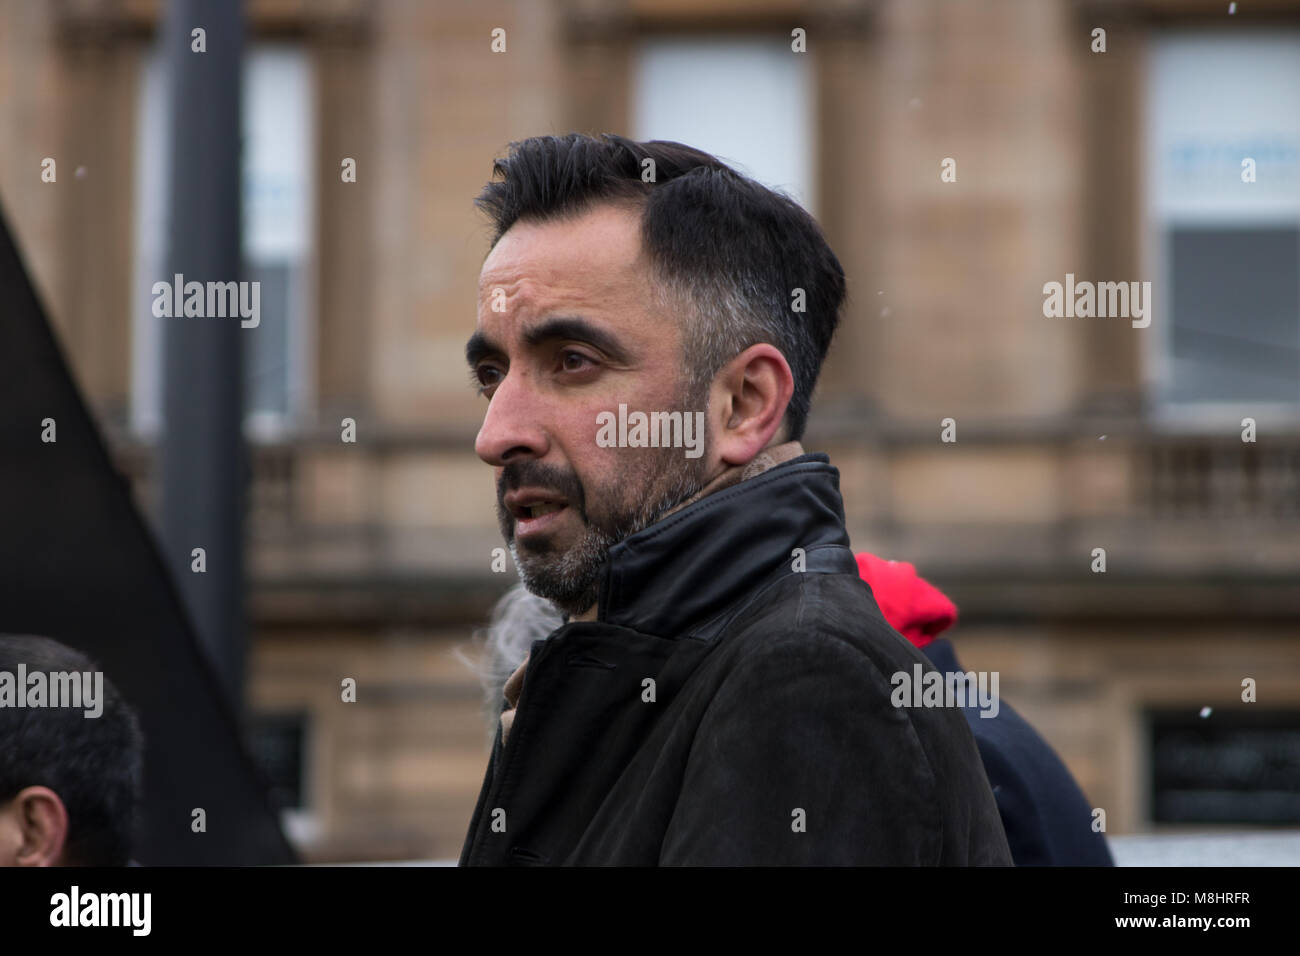 Glasgow, Scotland, UK. 17th March, 2018. A March Against Racism has taken place in Glasgow, with protesters walking - Stock Image